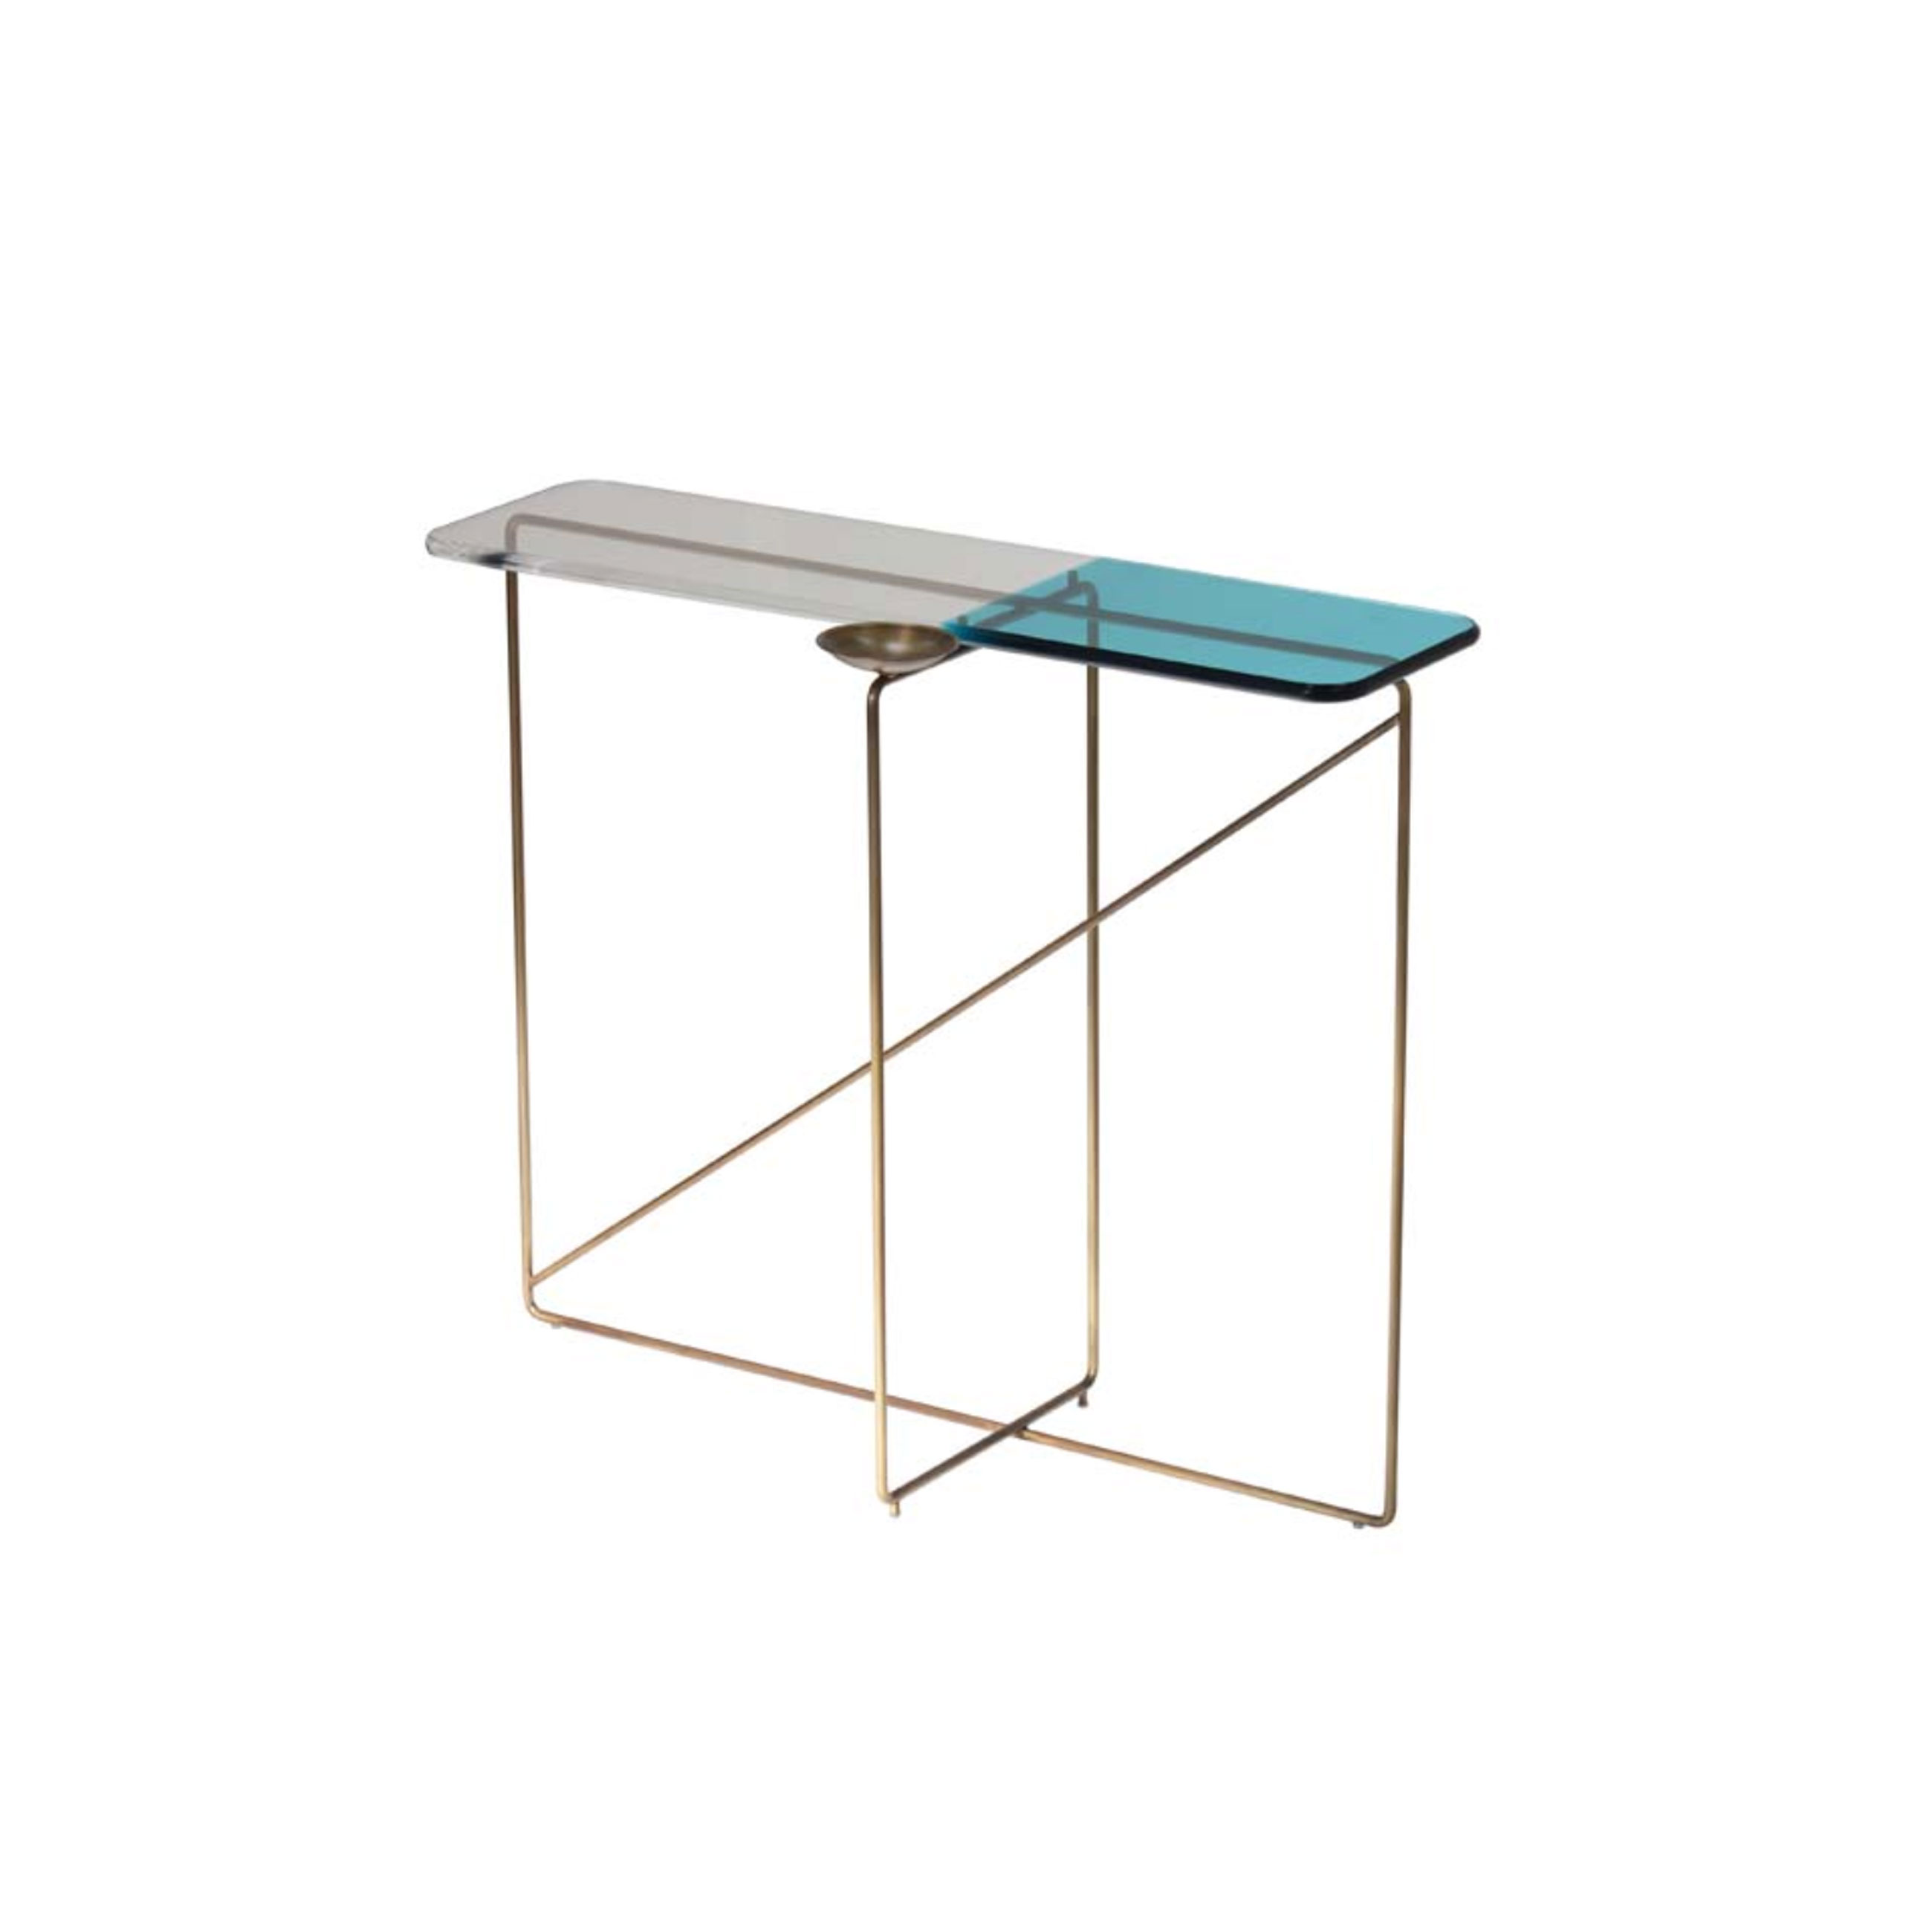 """Diaspro Console Table - Consolle with structures and empty pockets in brass. Top in bicolored methacrylate. Diaspro is part of Empirica Family. """"A creative process grown with the experience. There is a real connection between the human being and his creations, a chemical bond that is expressed through the unusual combination of elements that leads to an original and unexpected result. The Collection """"Empirica"""" is the result of a quick thought, an automatic gesture, a spontaneous sign, brass structures treated with special coating are mixed with methacrylate surfaces characterized by exclusive shades.""""  